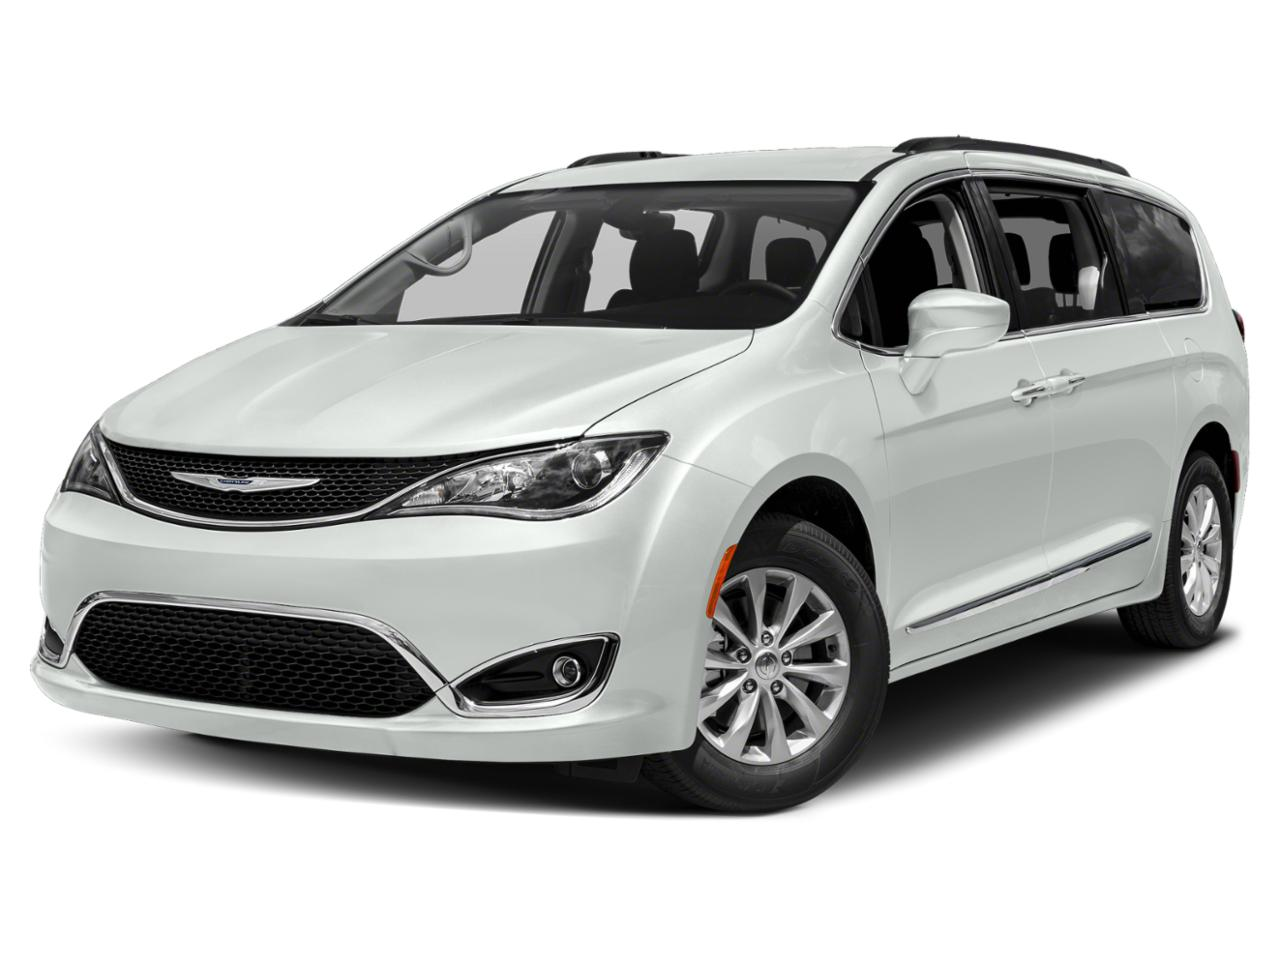 2019 Chrysler Pacifica Vehicle Photo in Sheffield, AL 35660